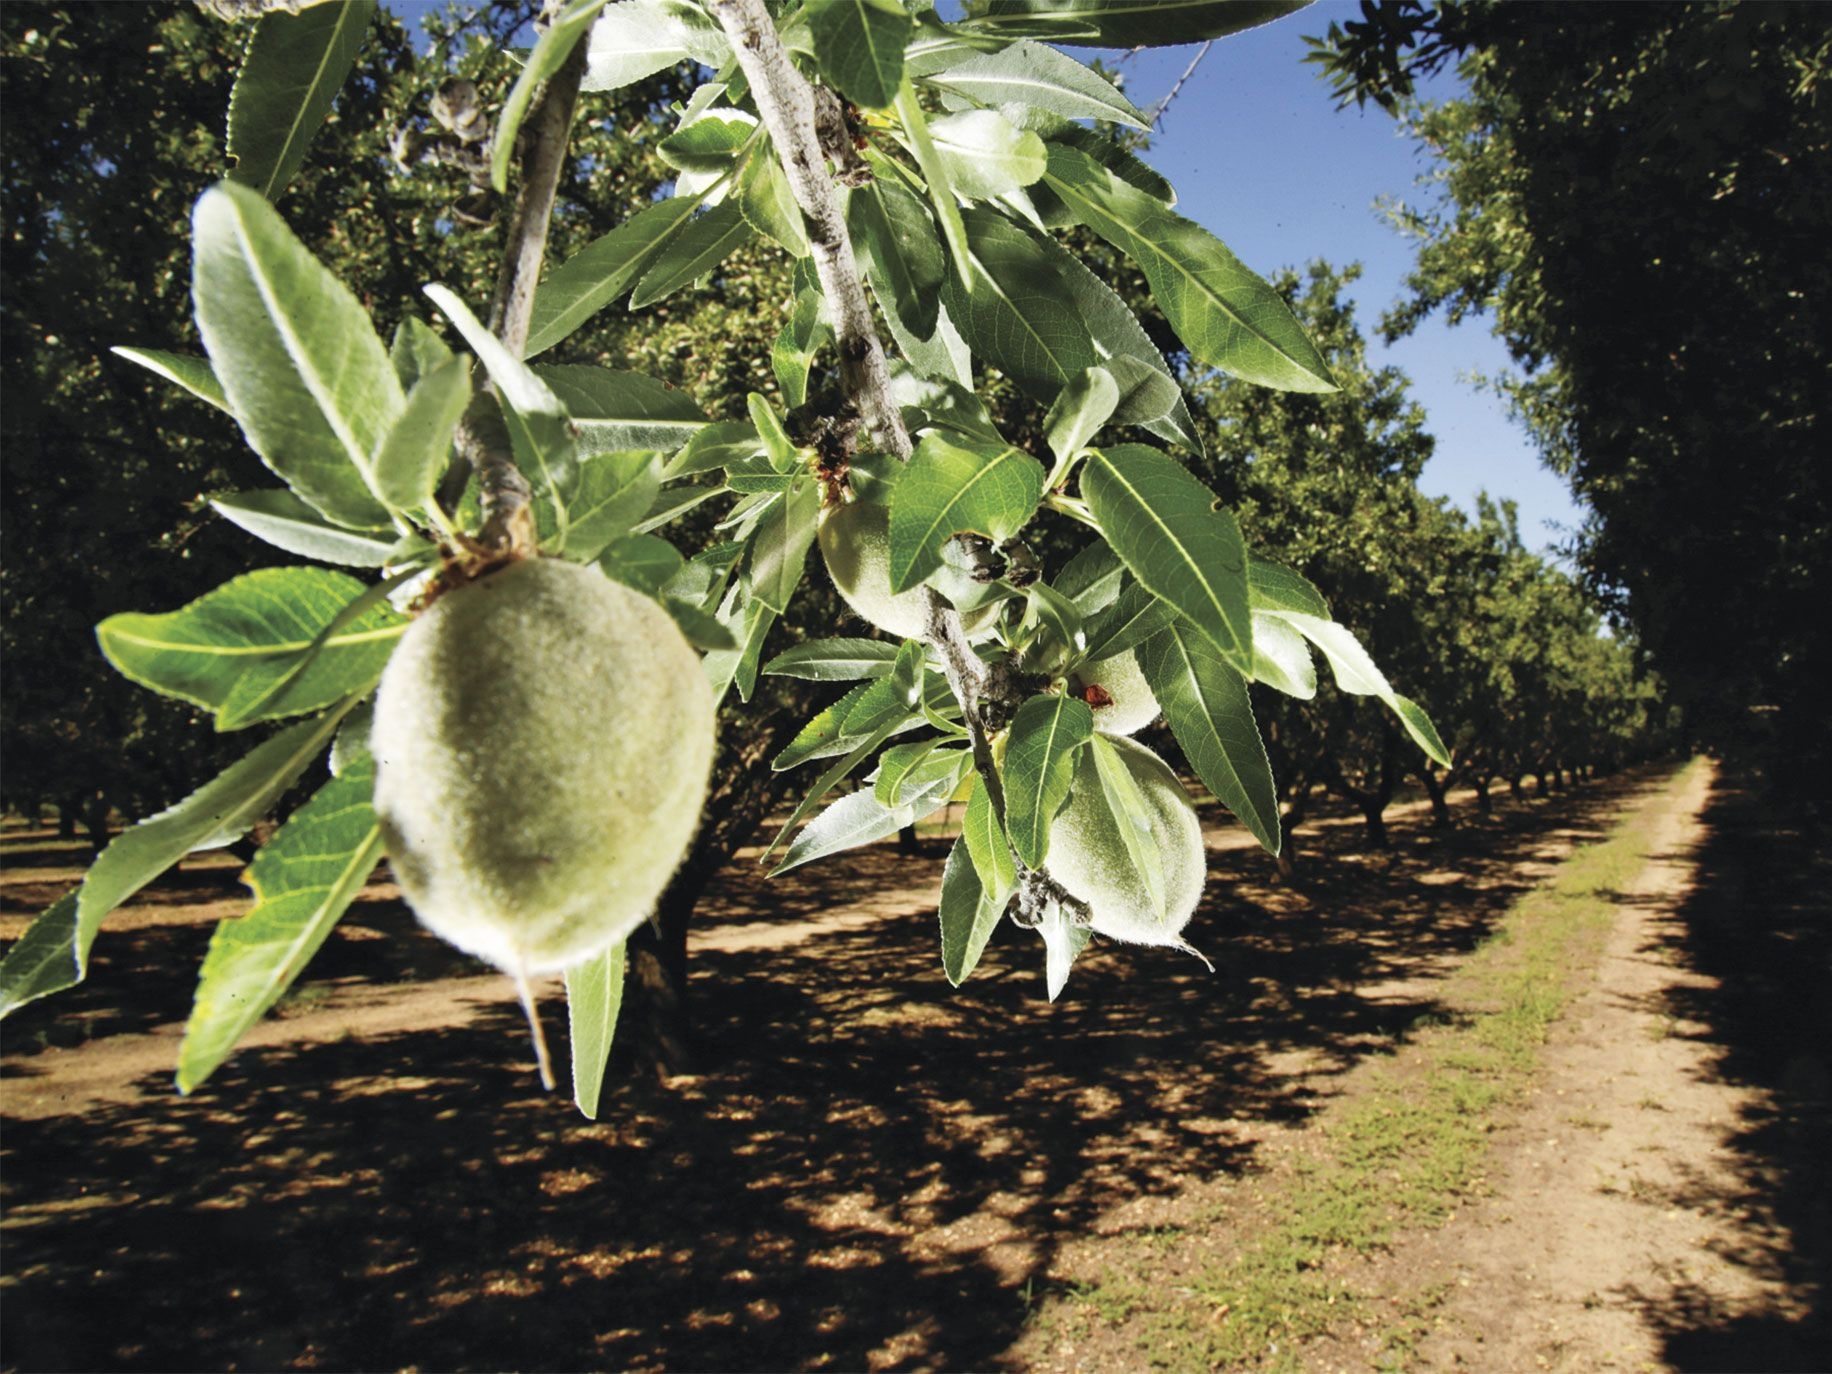 Almonds on a branch in an orchard in Fresno County. Almond growers rent bees to pollinate their crops.